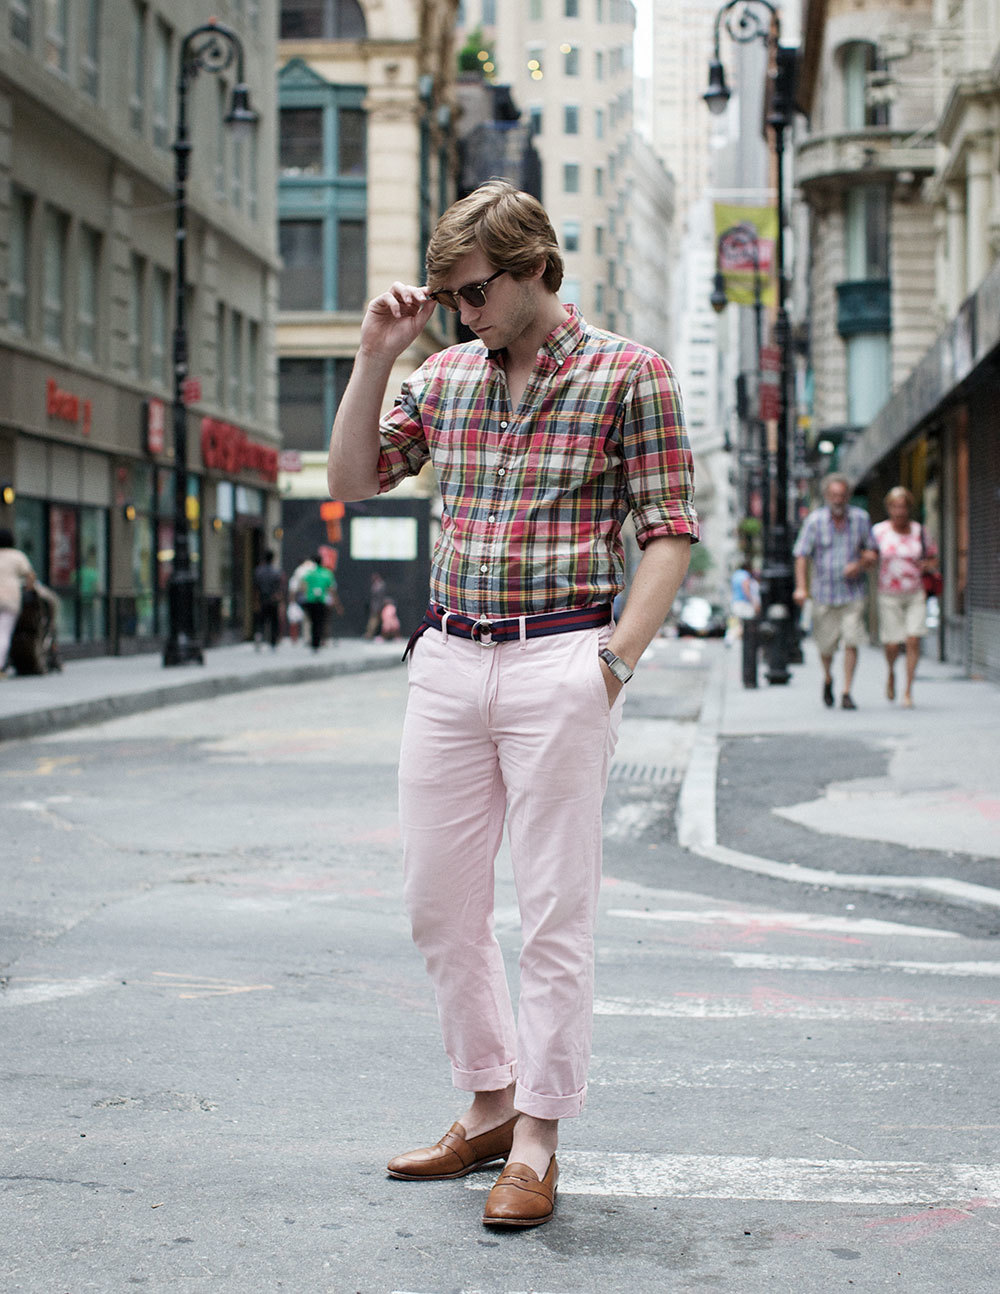 Geek-pink-streetstyle-men-fashion-prep-preppy.jpeg